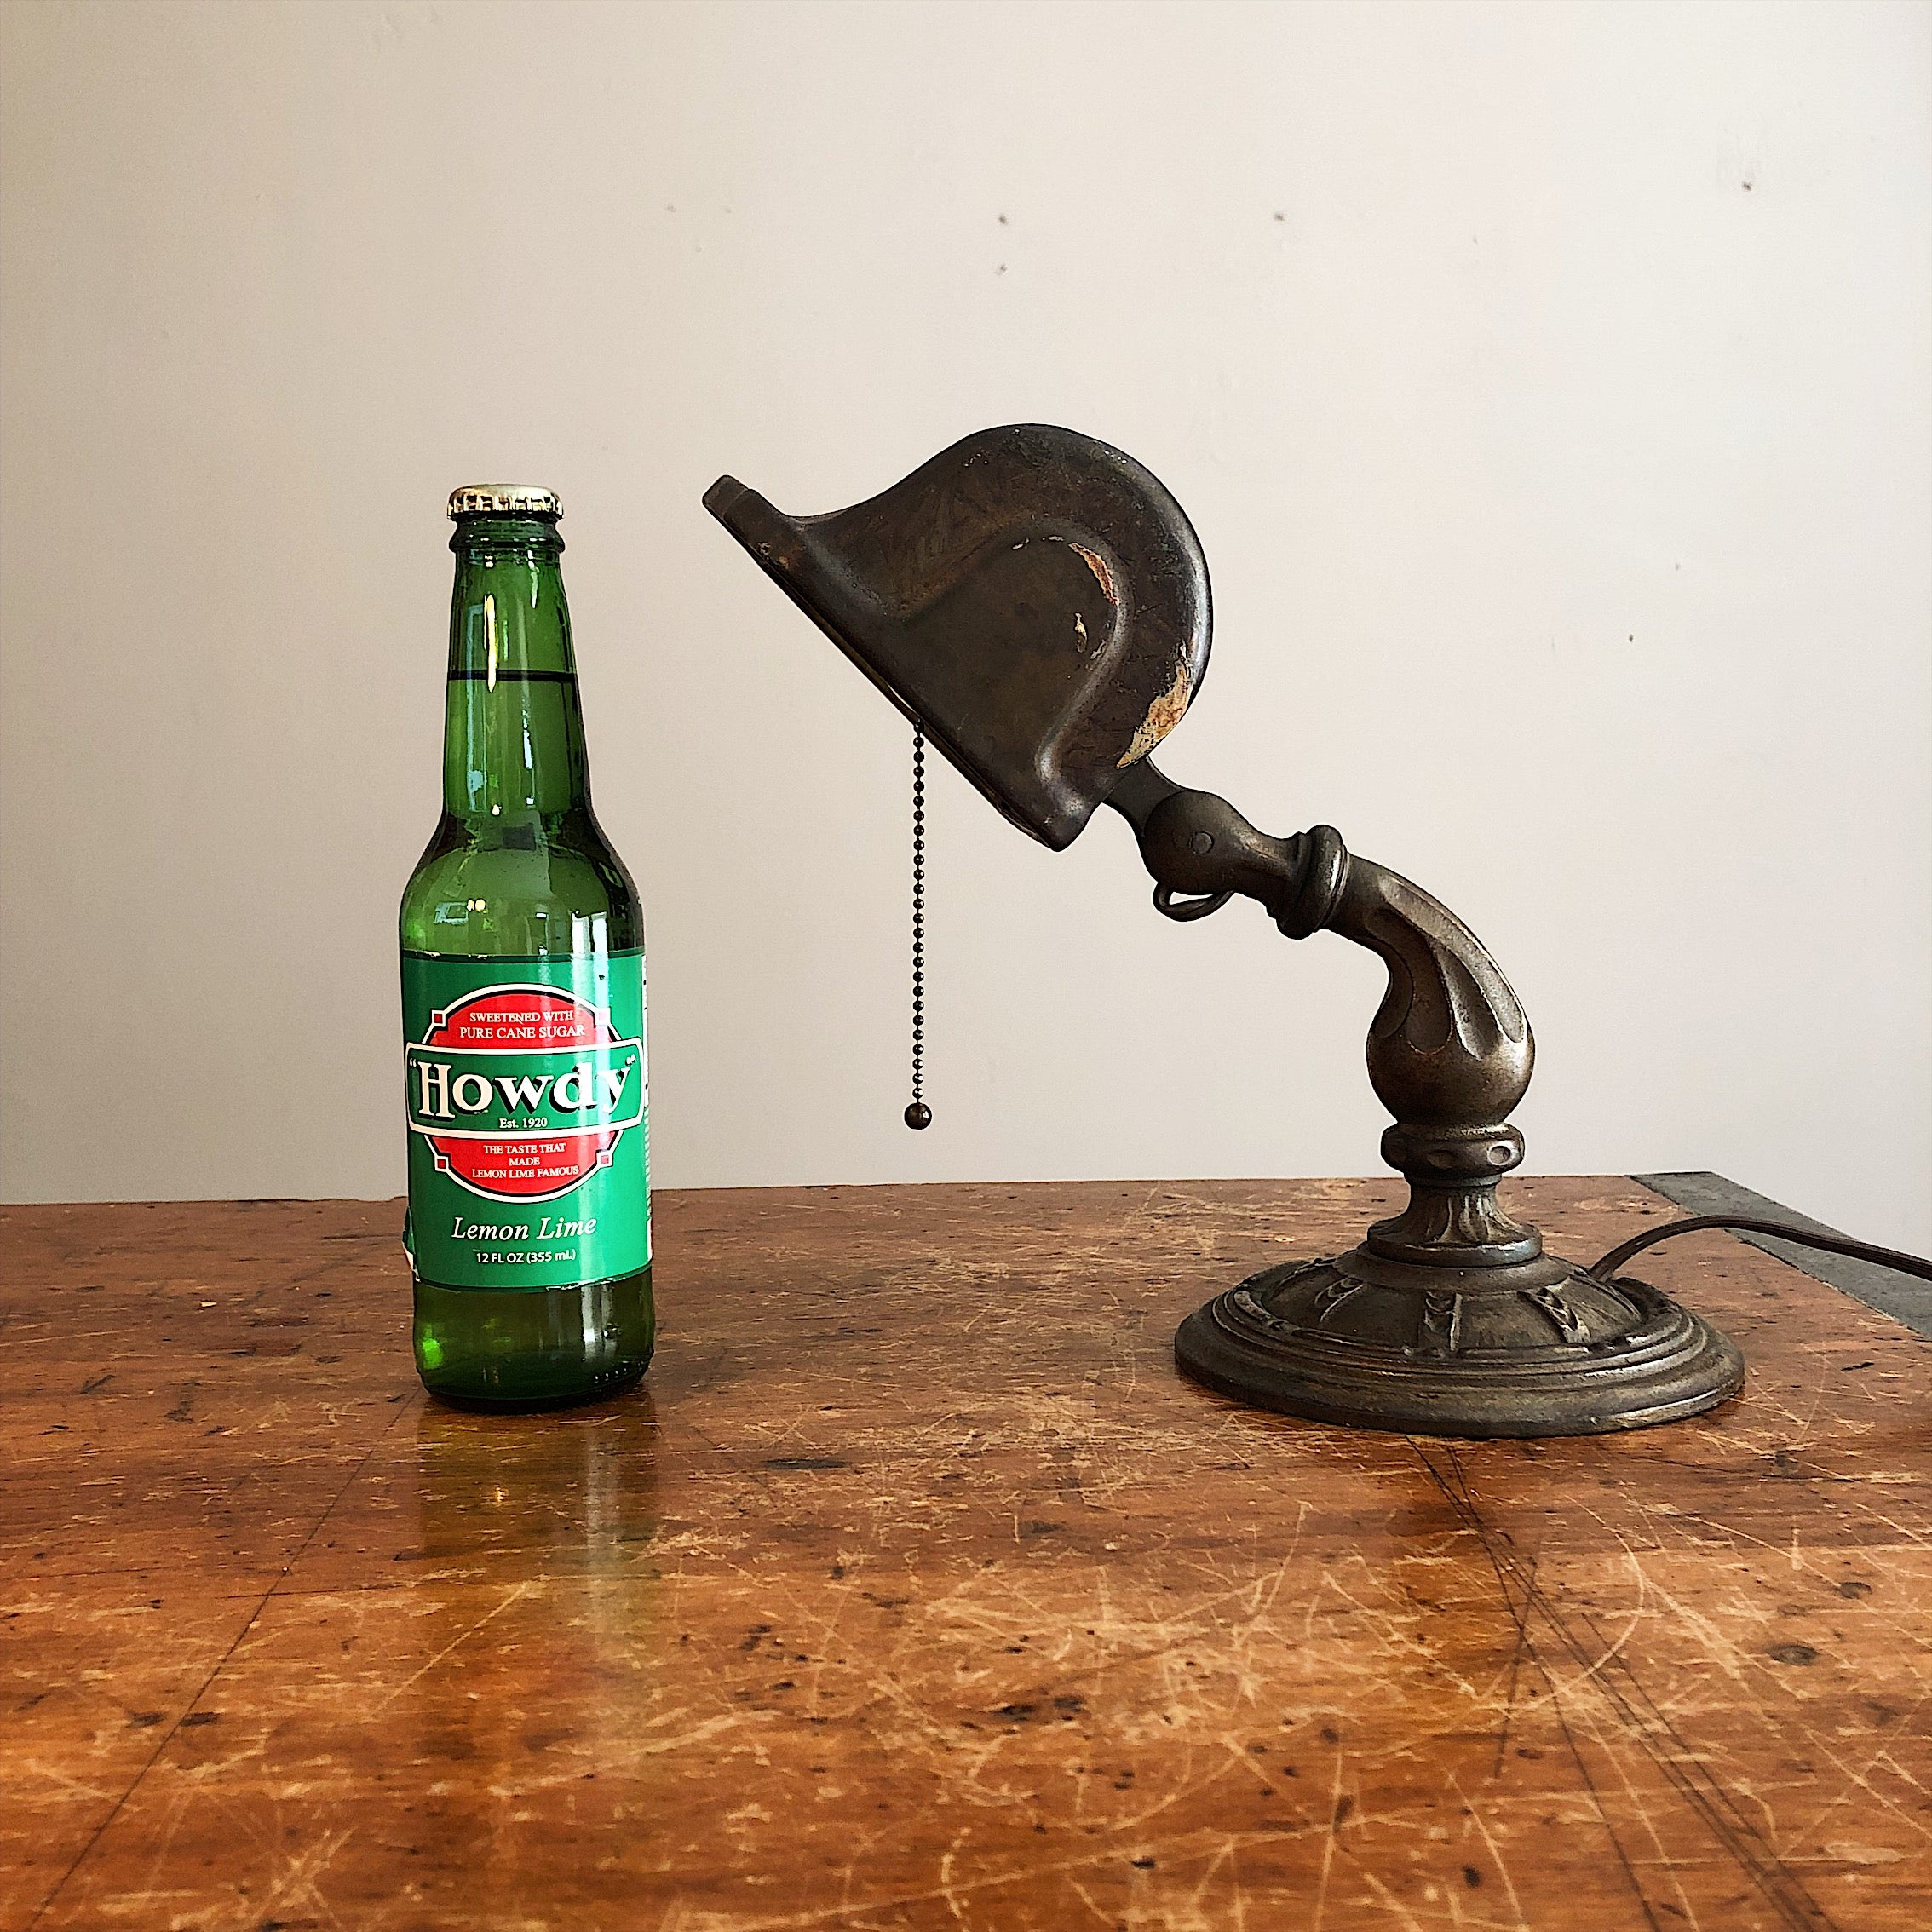 Scale for Rare Aladdin Lamp with Ornate Cast Iron Base - Antique Industrial Decor - Vintage Lighting - 1920s Table Lamp